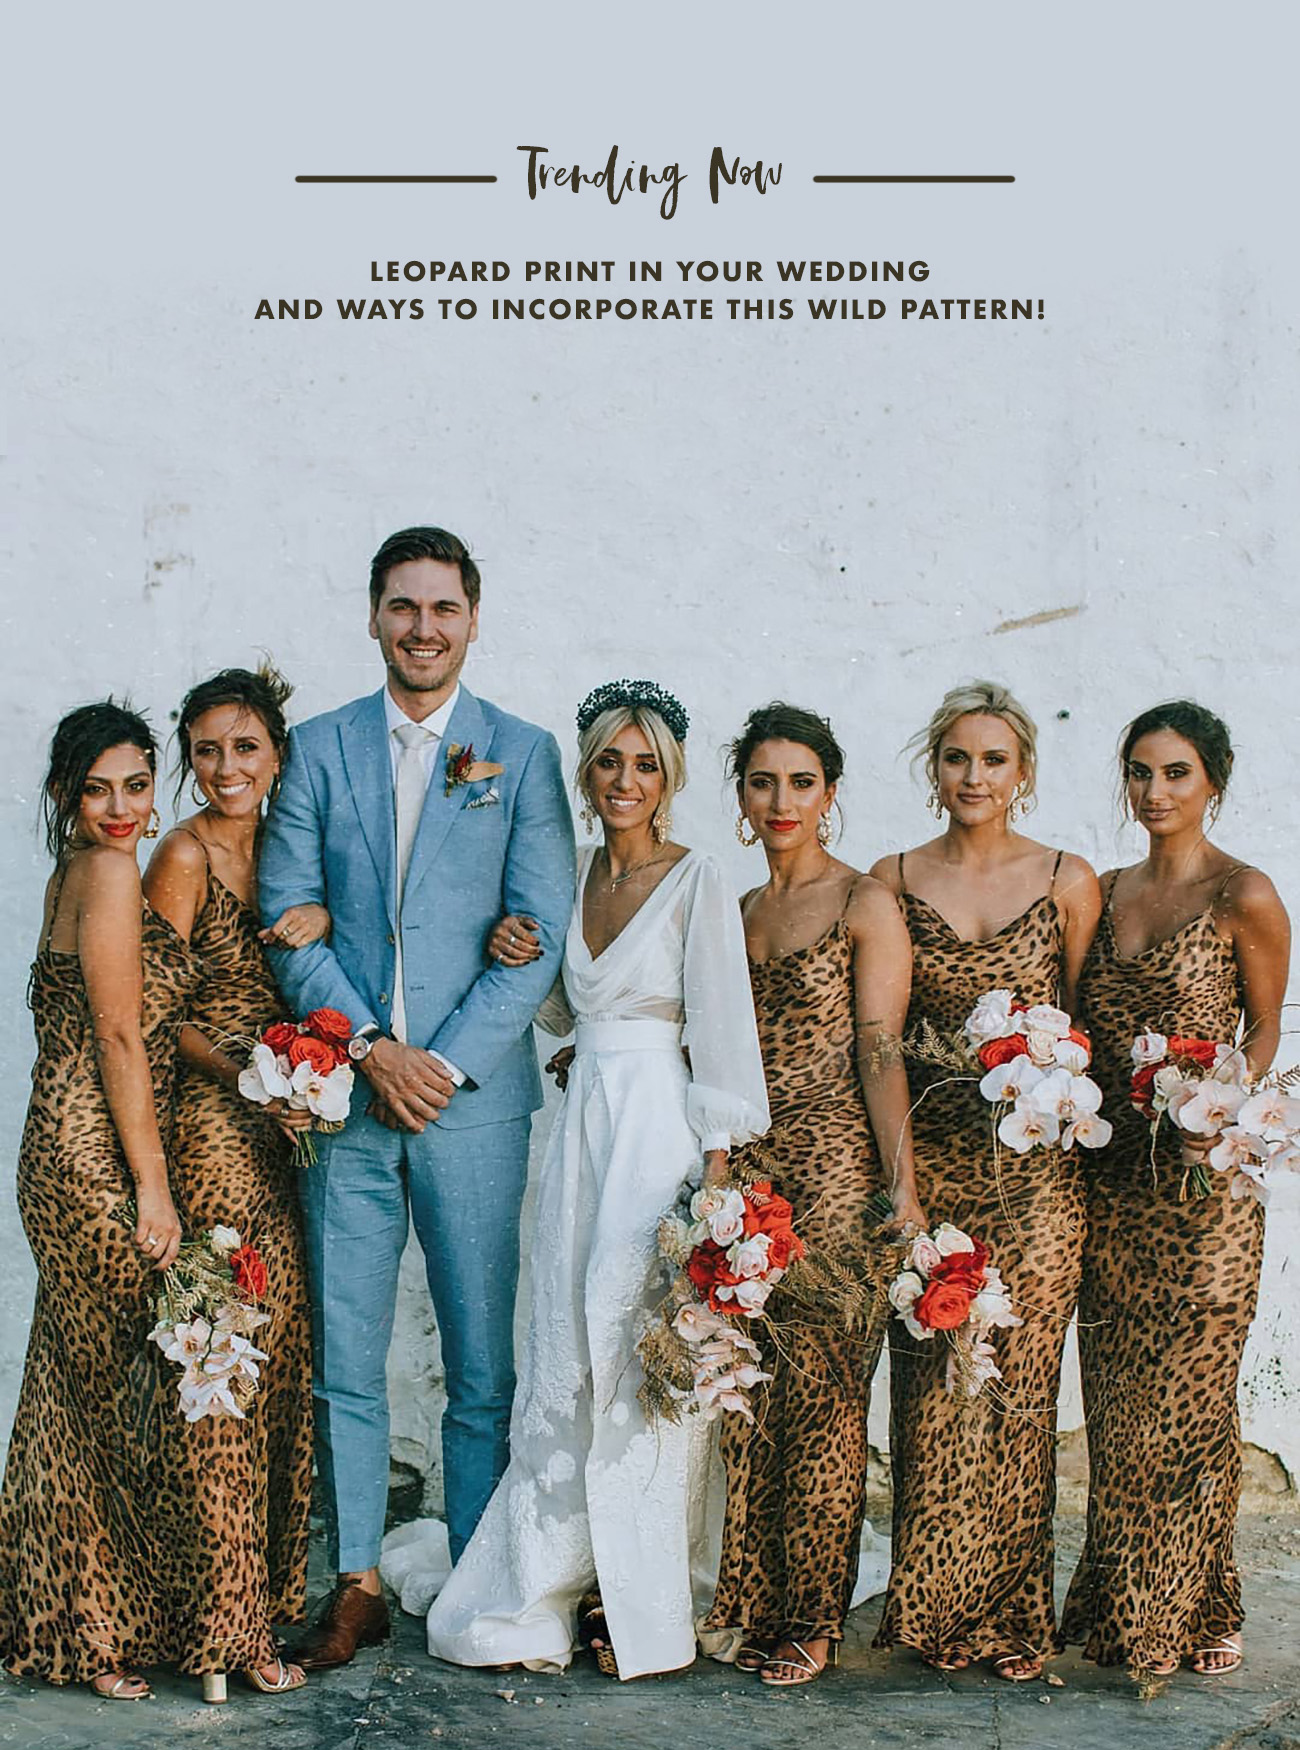 leopard print bridesmaids for your wedding